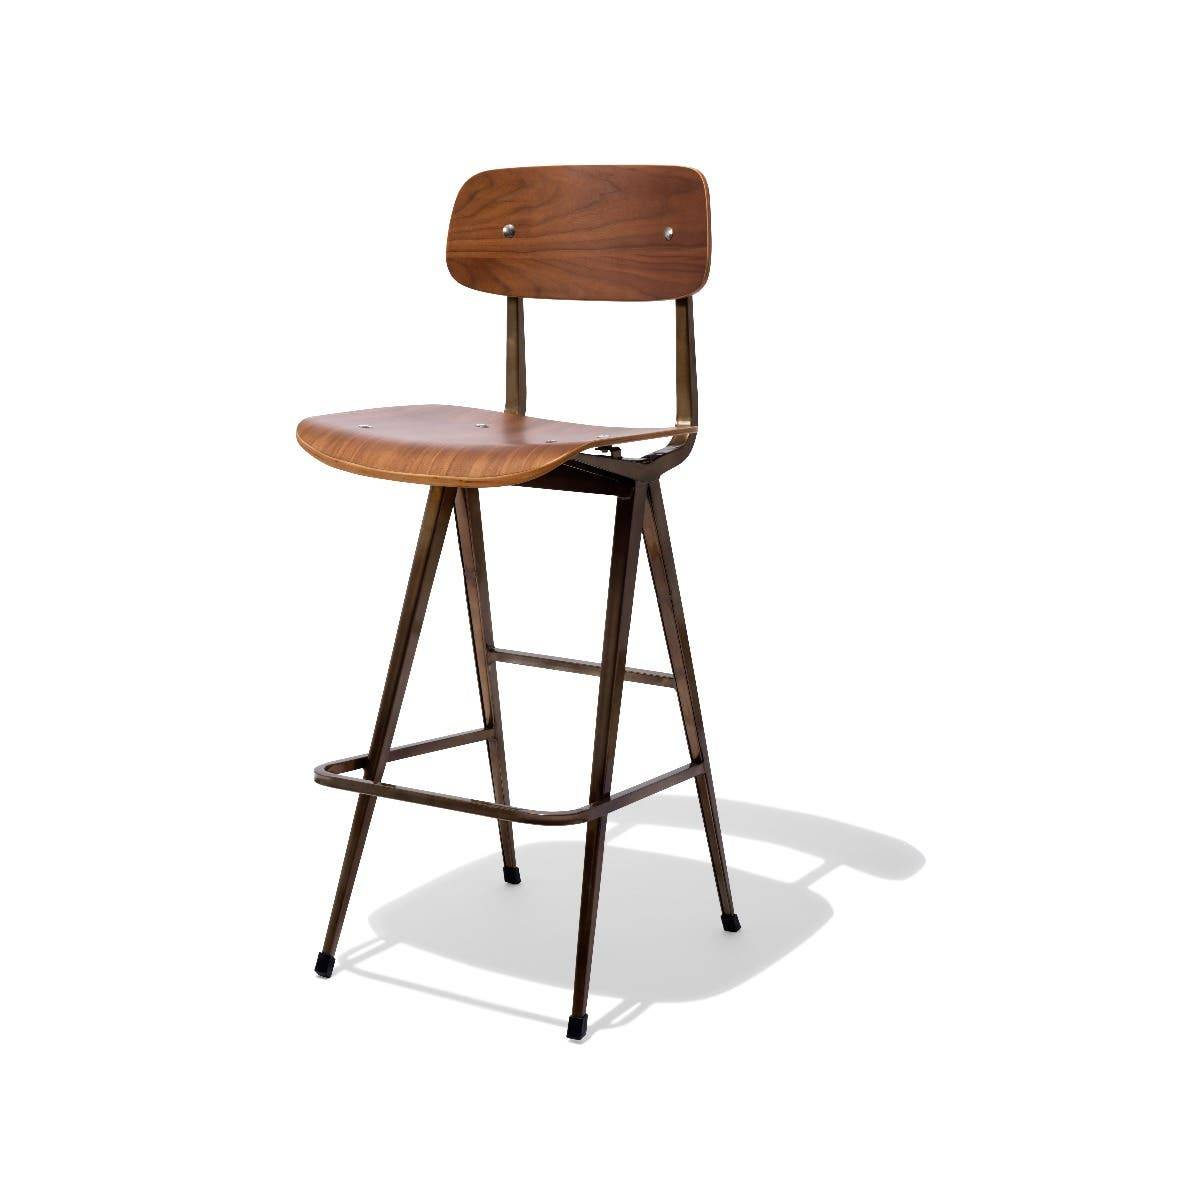 Industry West Madewell Bar Stool with a Walnut Seat